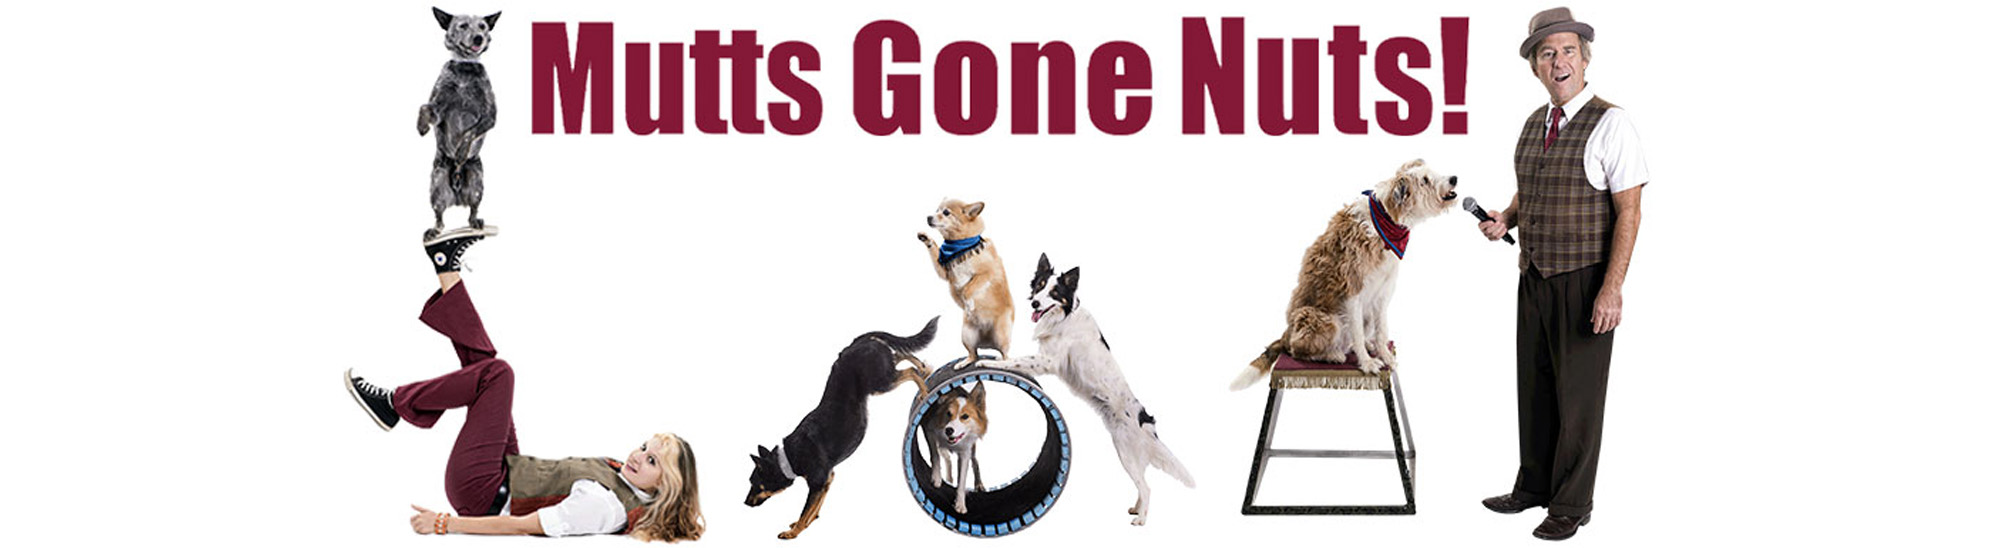 mutts-gone-nuts